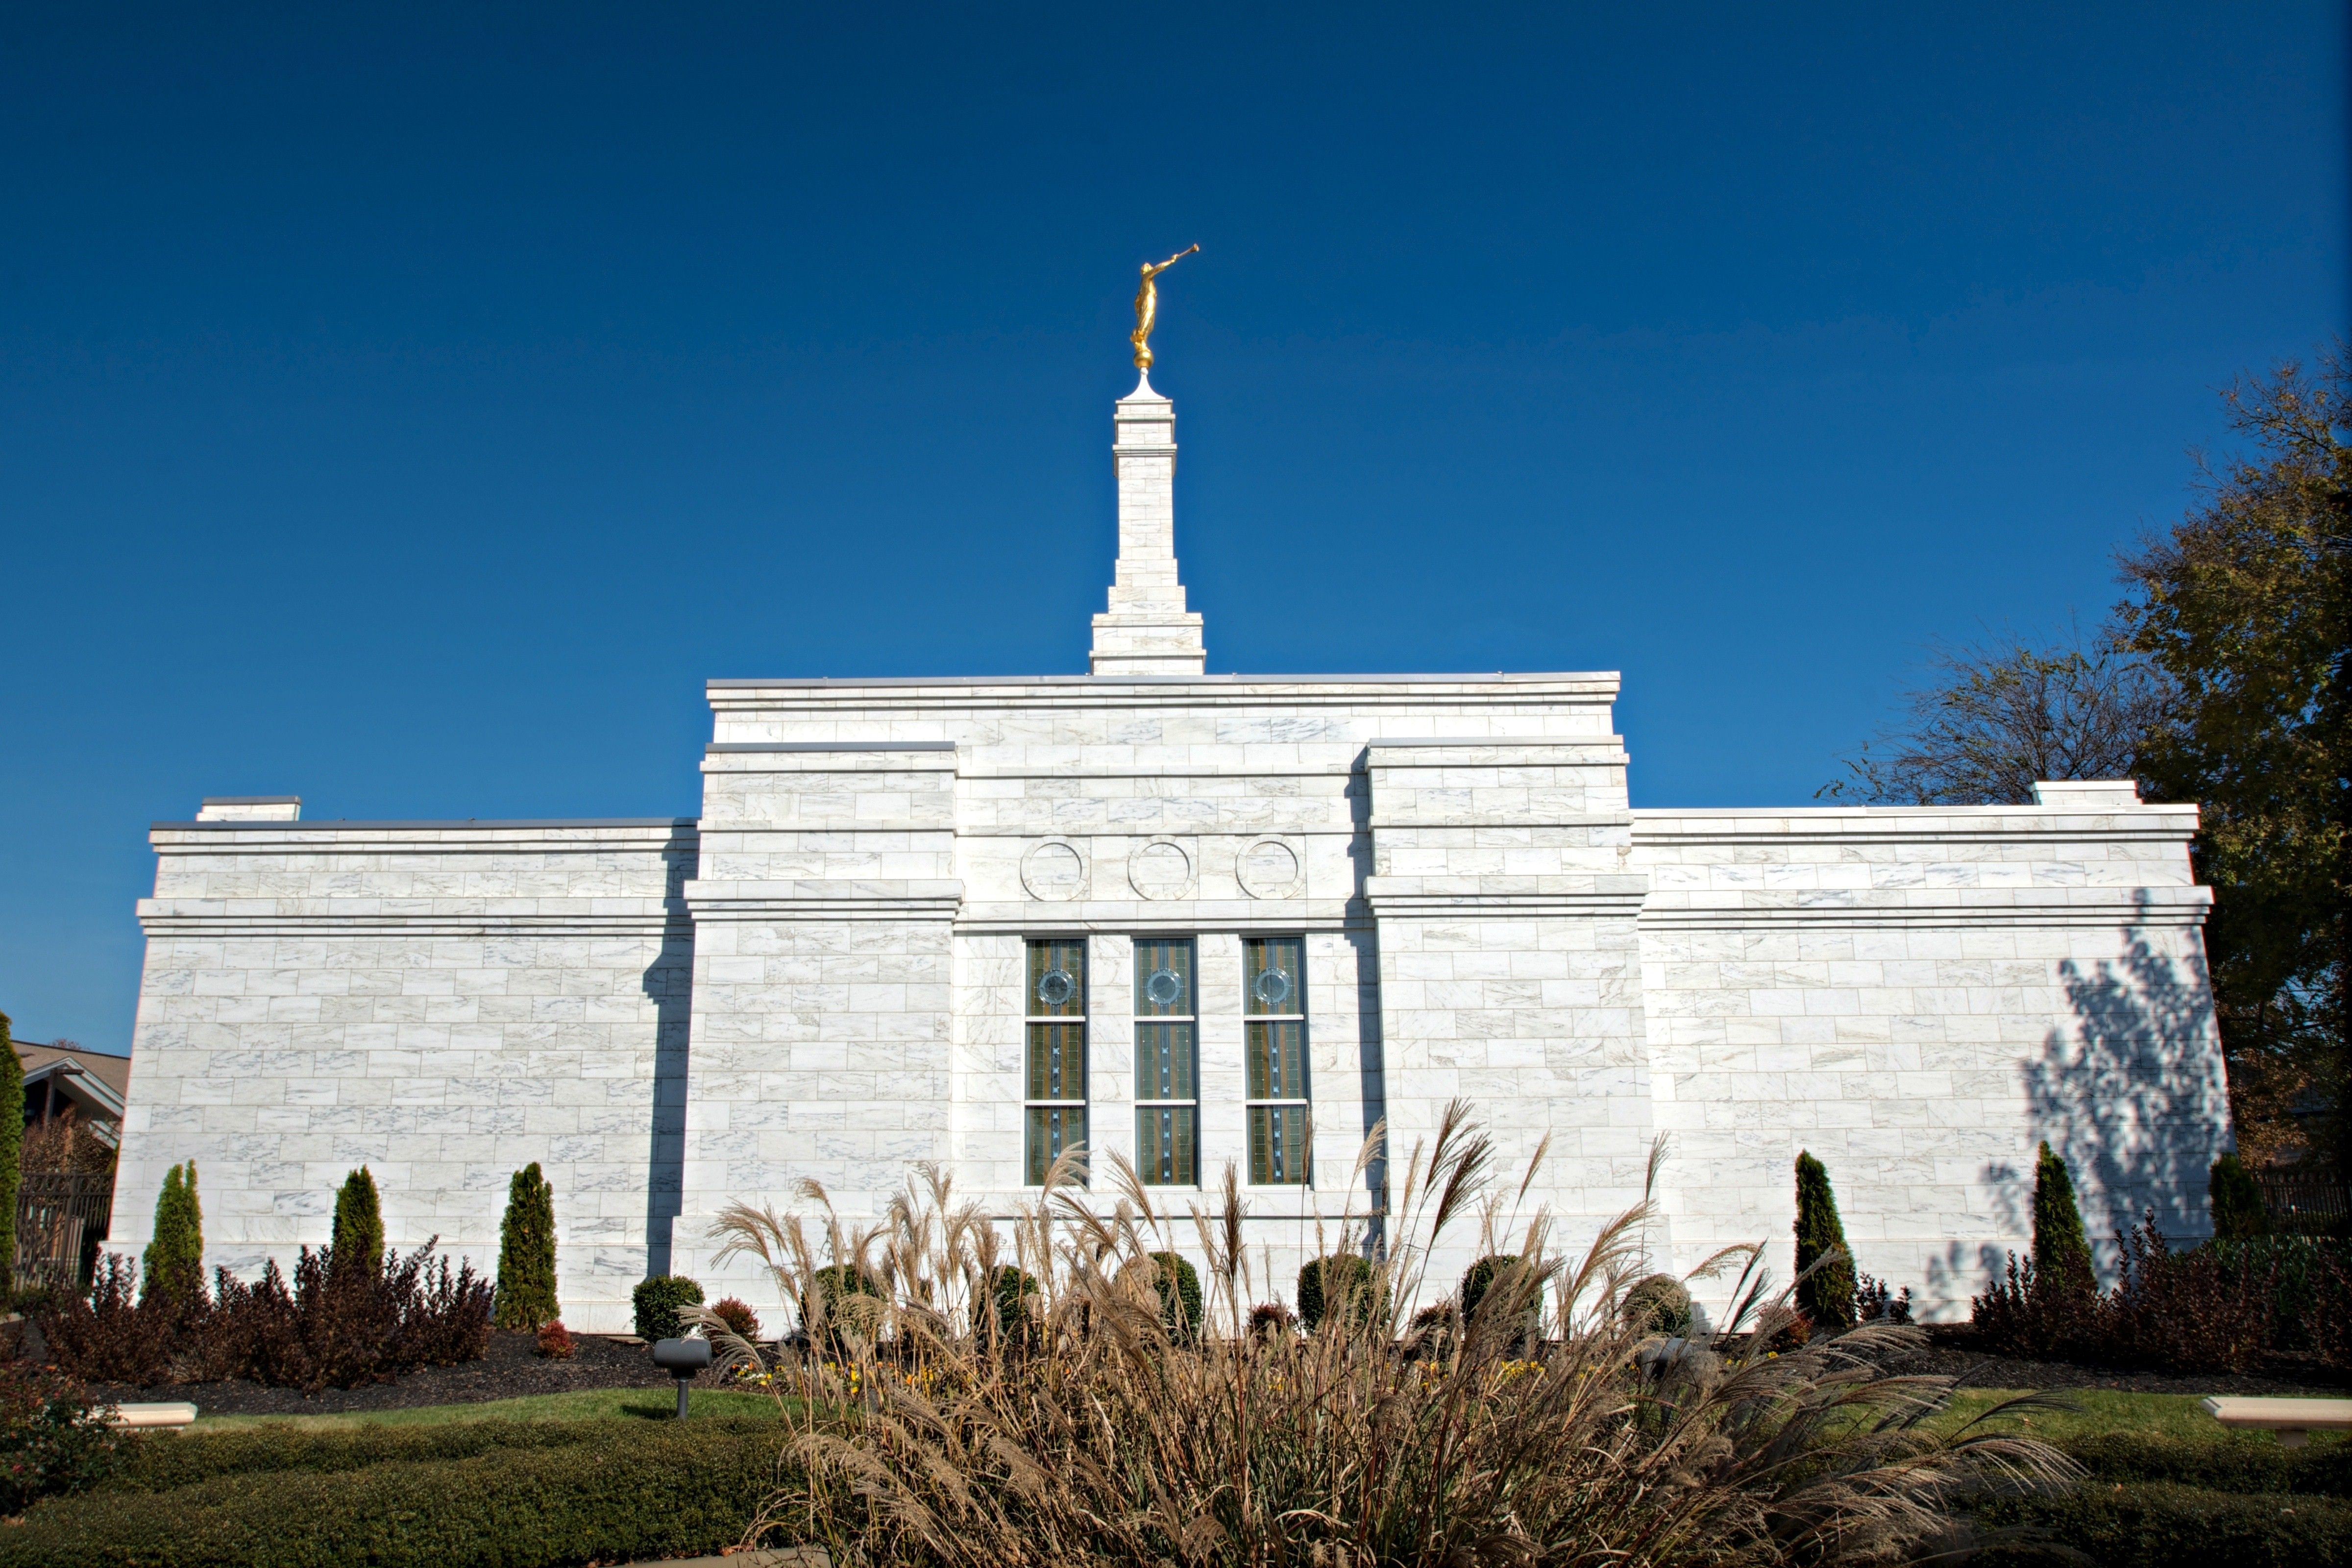 The Nashville Tennessee Temple side view, including scenery and the exterior of the temple.